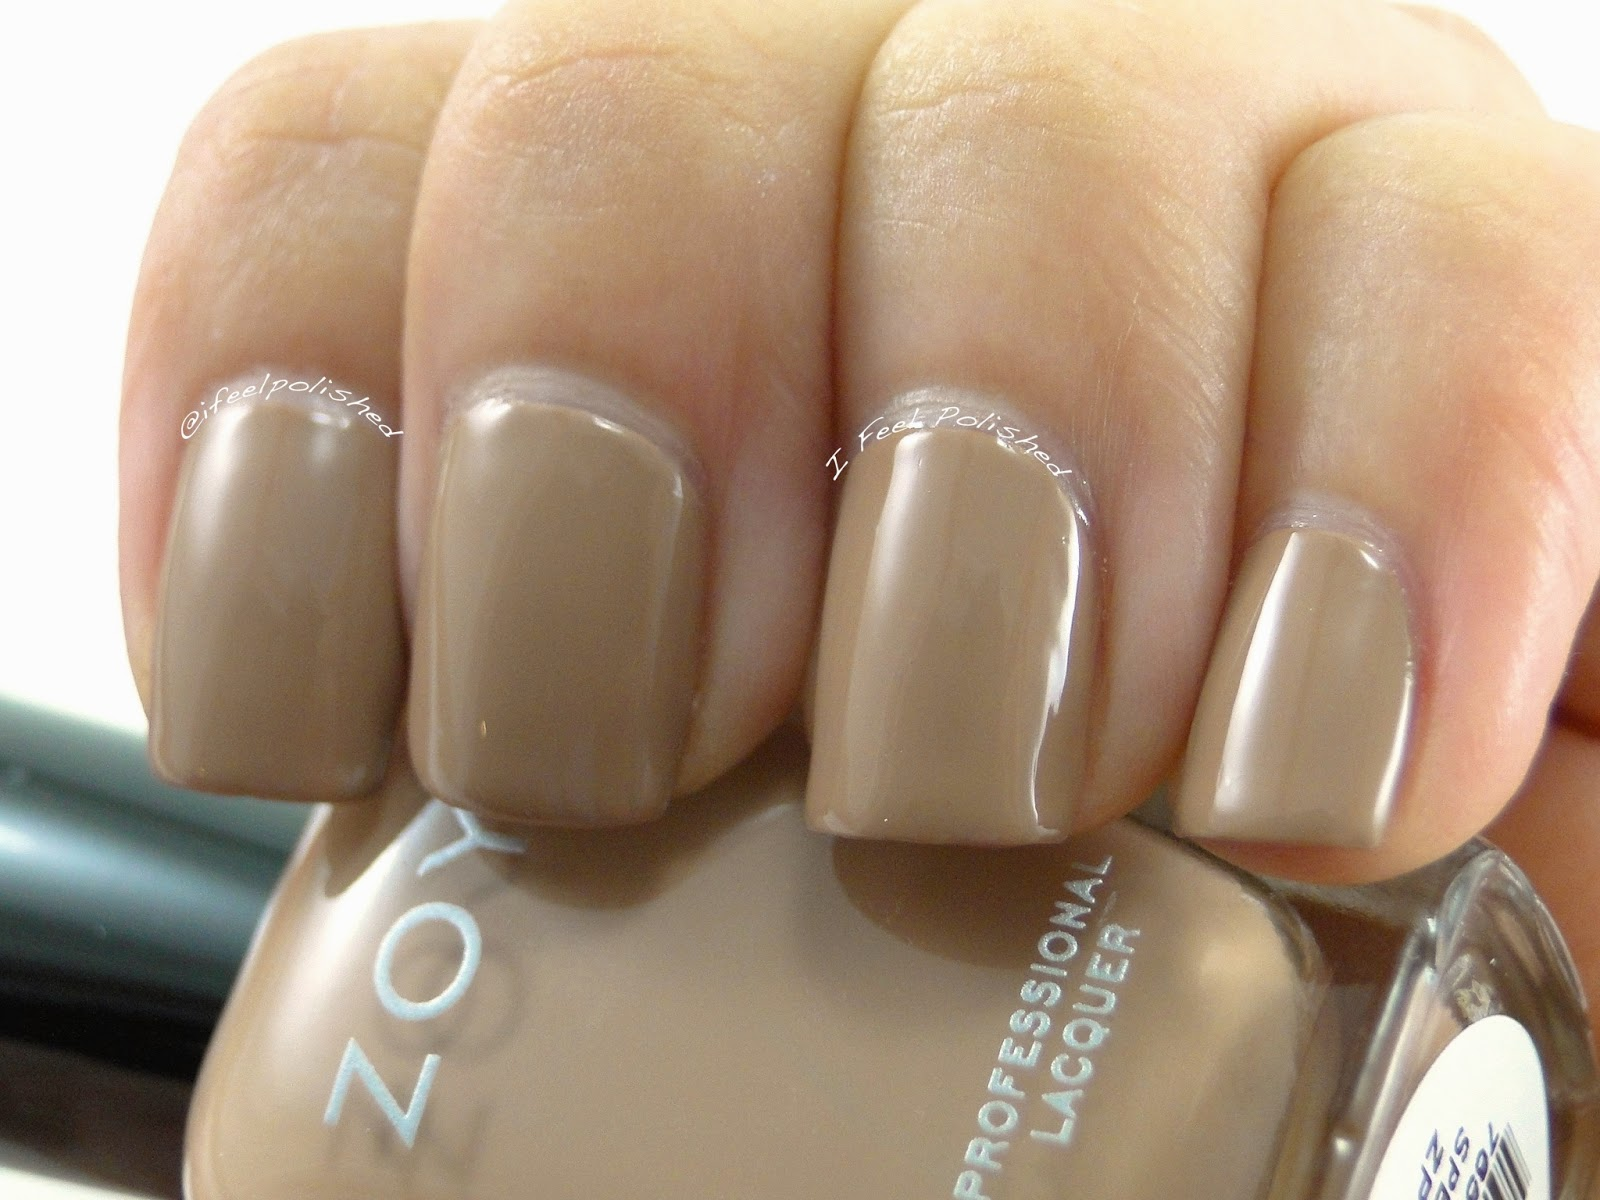 Zoya Spencer Swatch